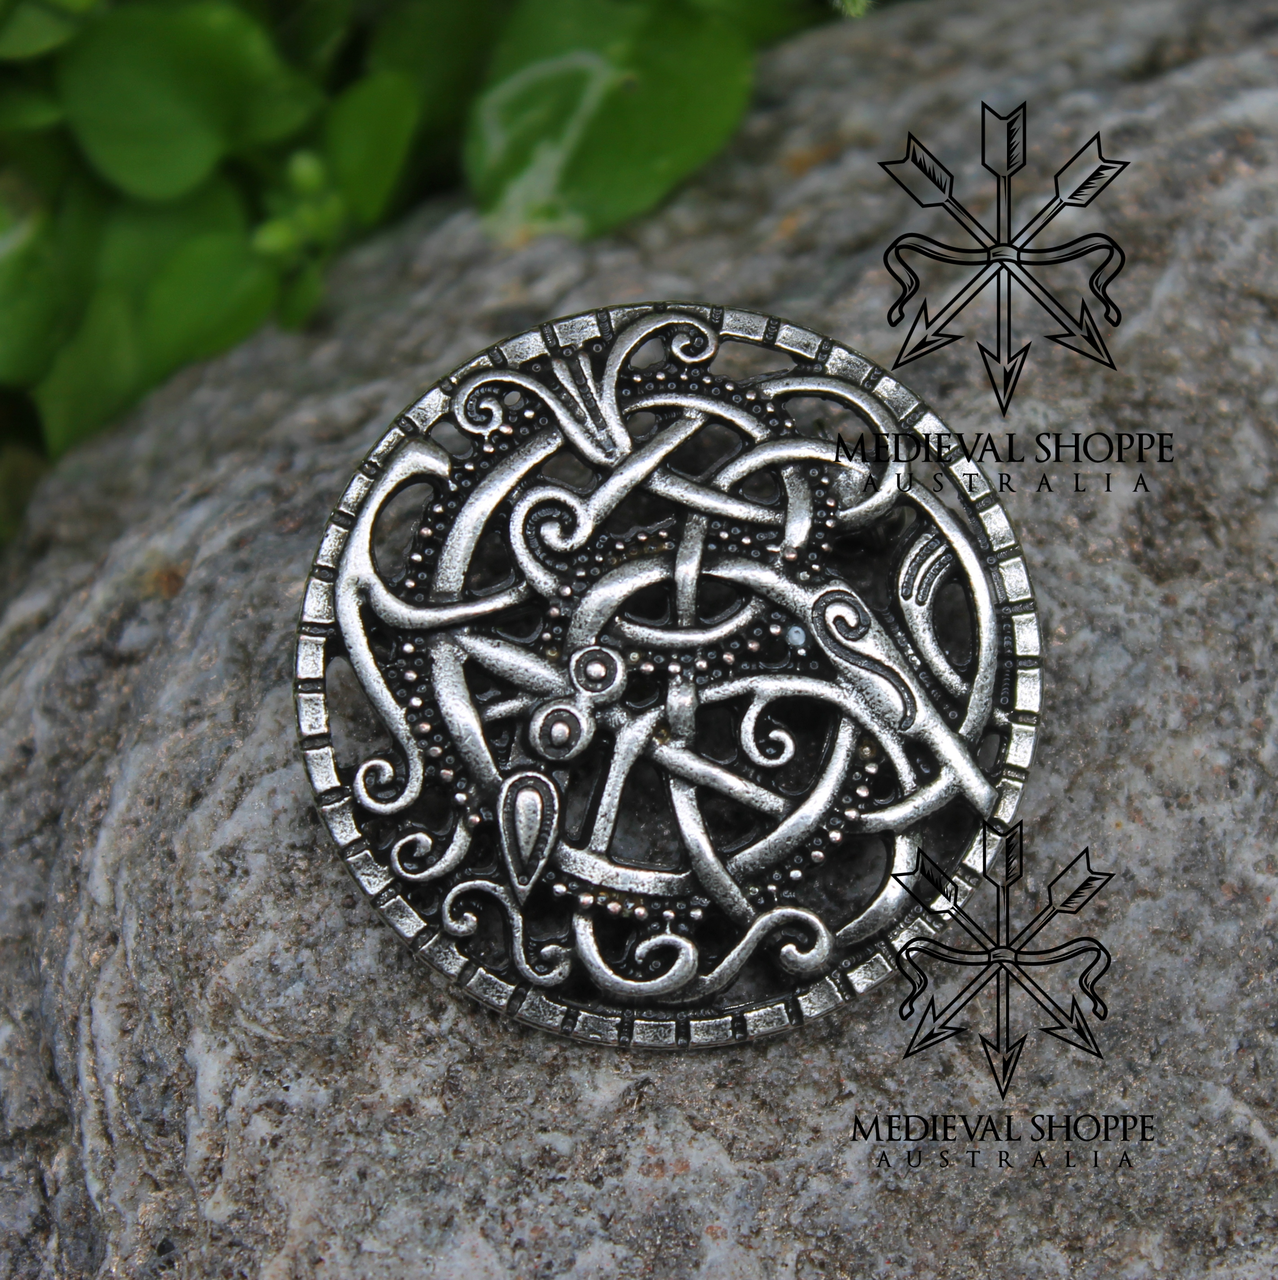 miracle like pewter scottish similar plated brooch pin shield items kilt gold knot and celtic